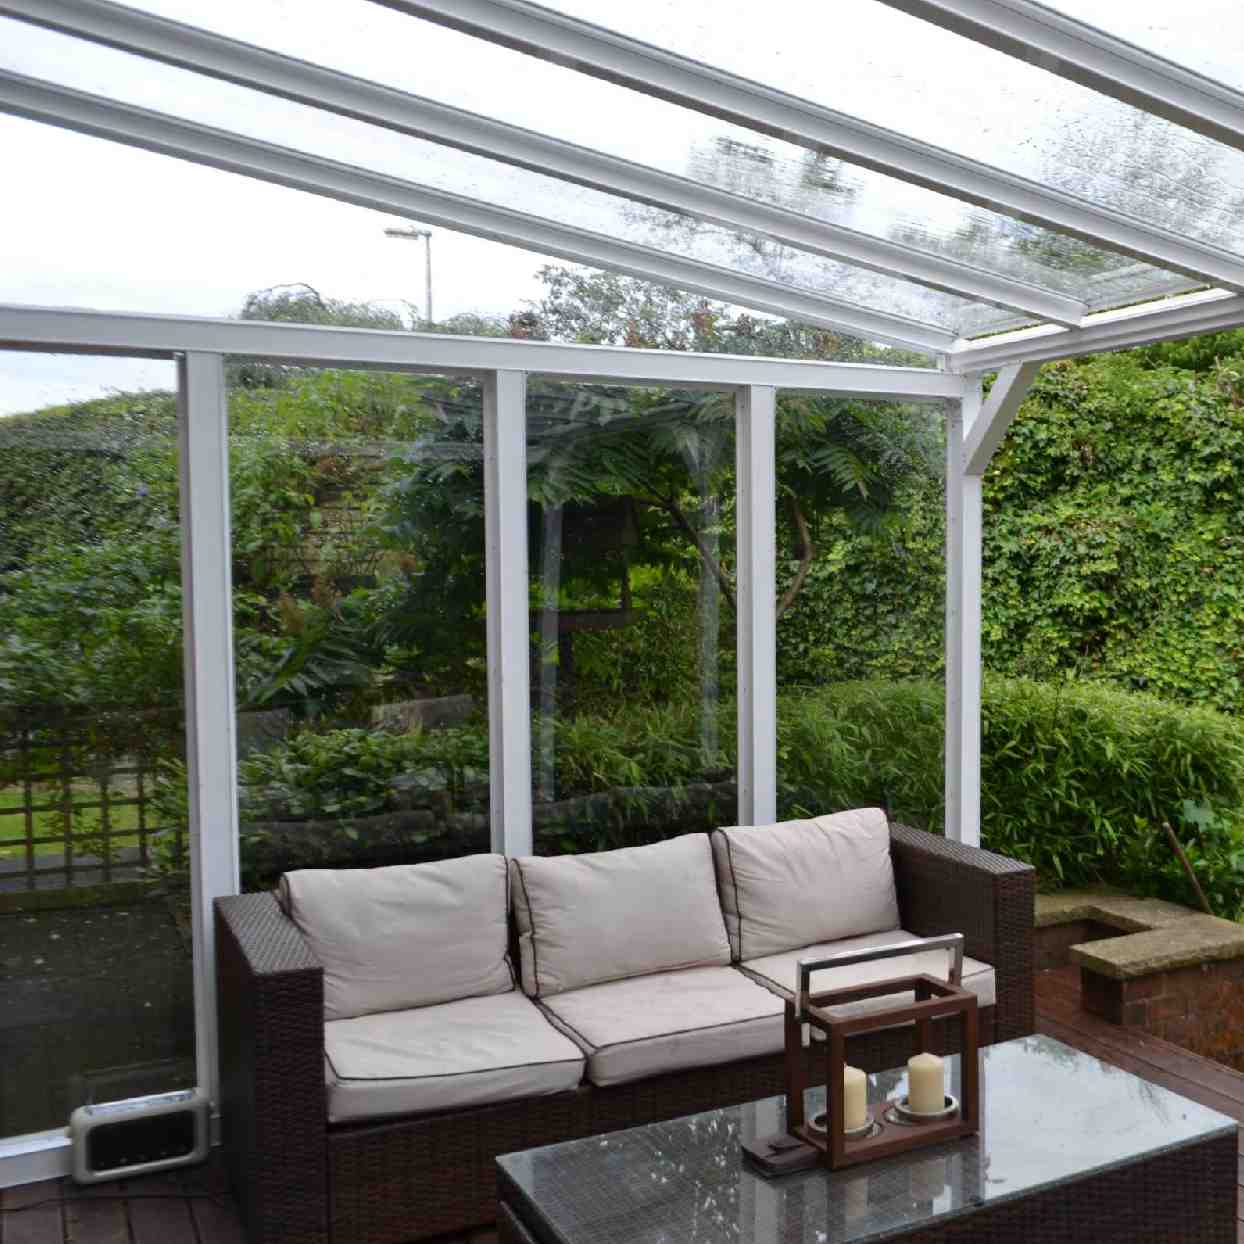 Buy Omega Verandah with 16mm Polycarbonate Glazing - 4.2m (W) x 4.0m (P), (3) Supporting Posts online today